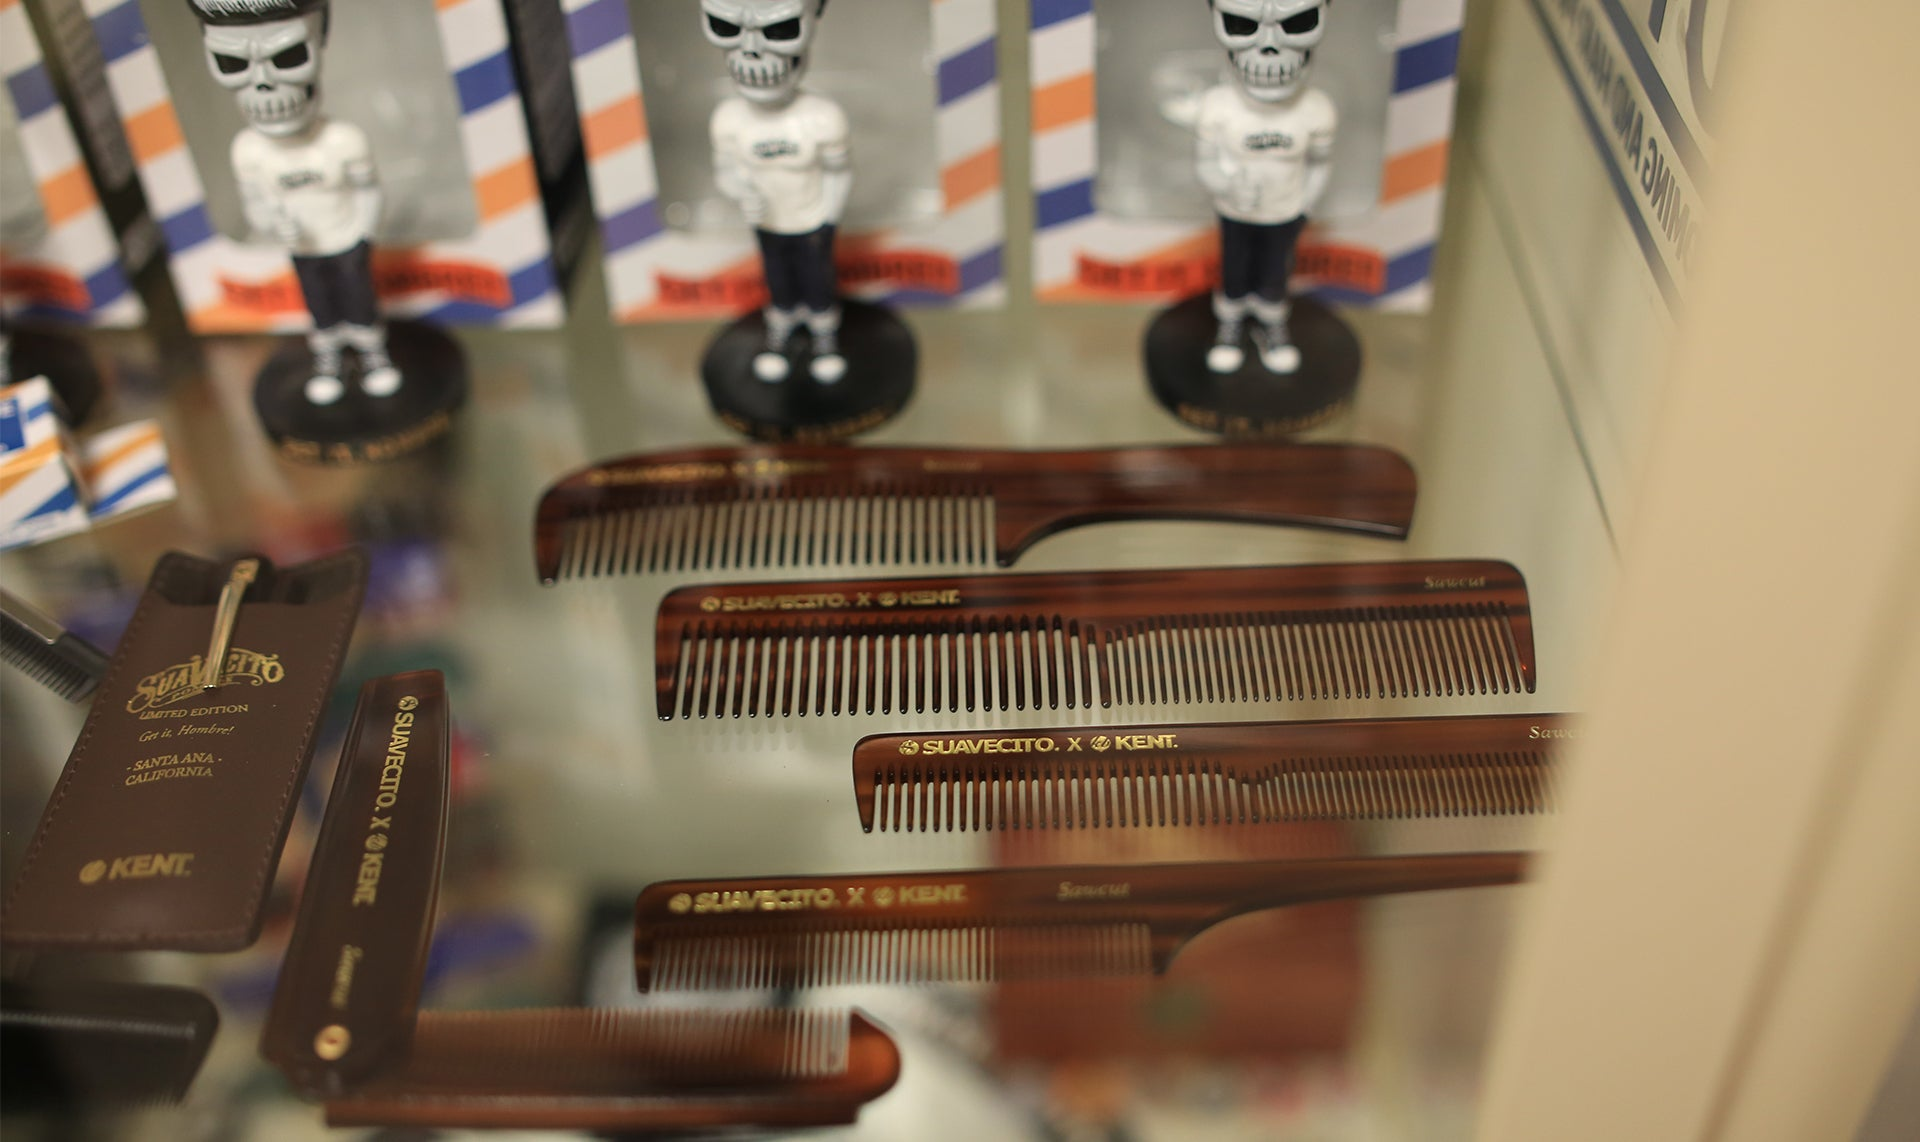 Suavecito X Kent Comb Collaboration - Wait till you see our combs